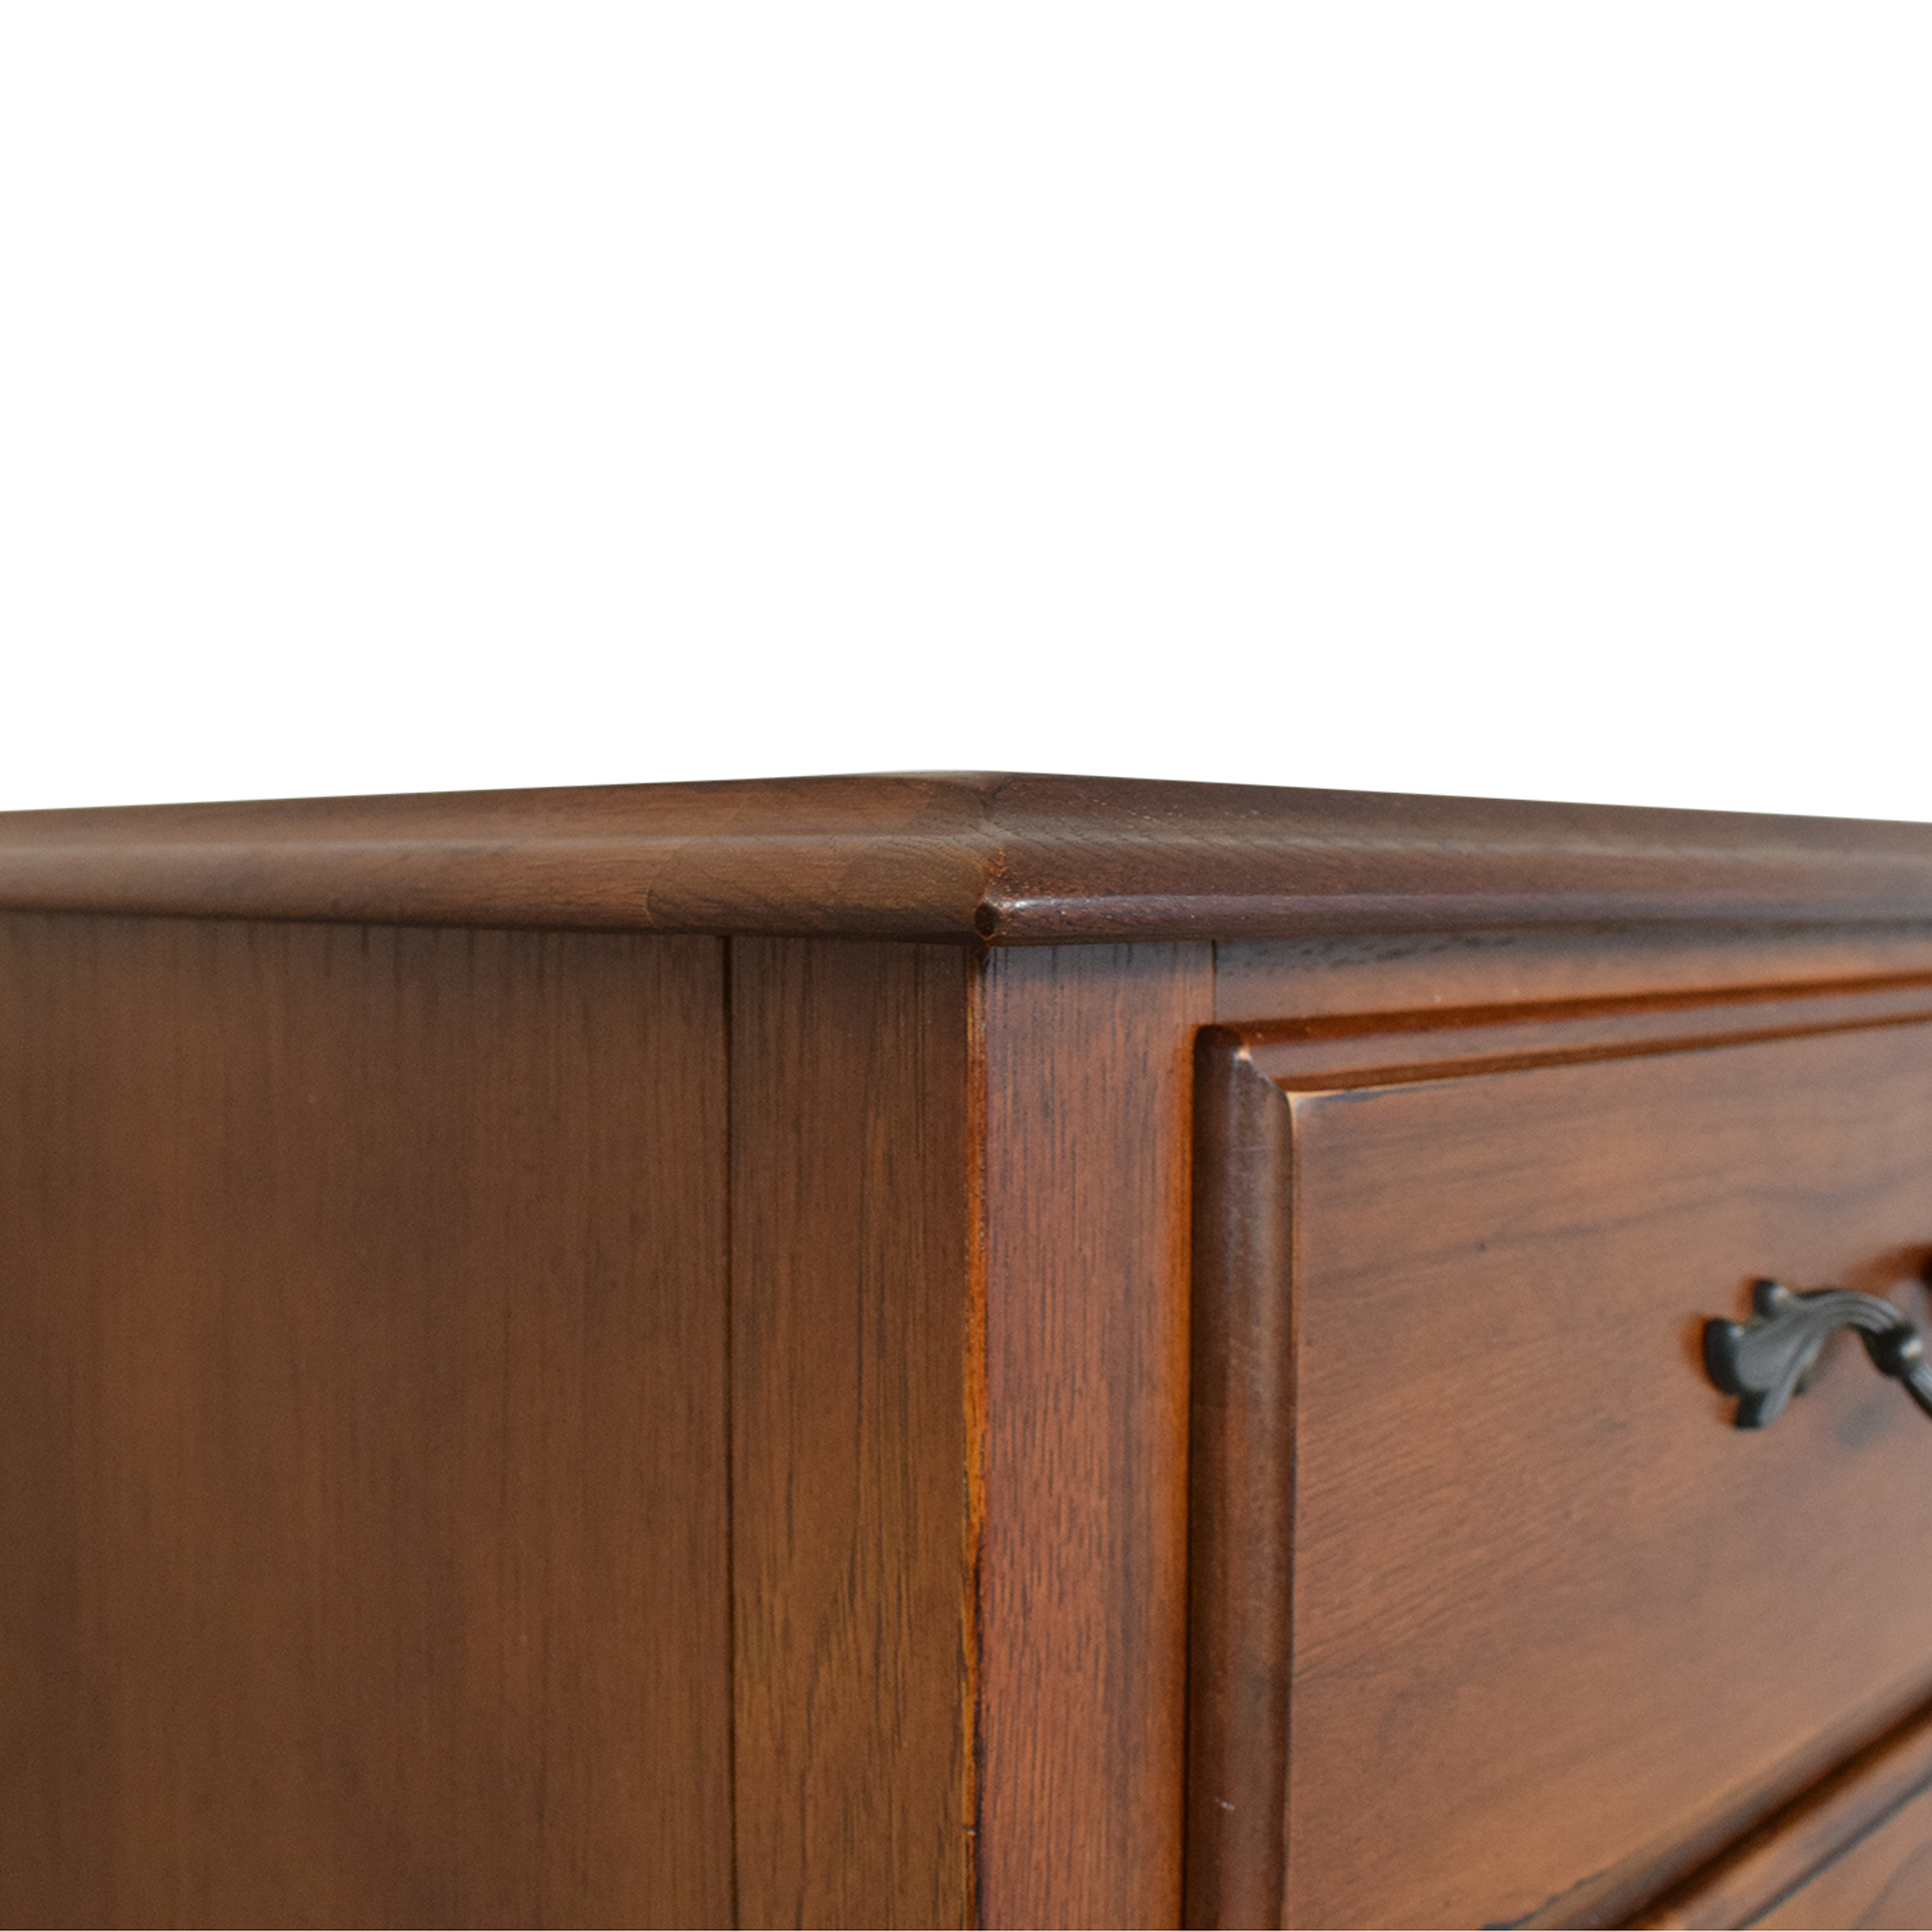 Thomasville Impressions Chest of Drawers Thomasville